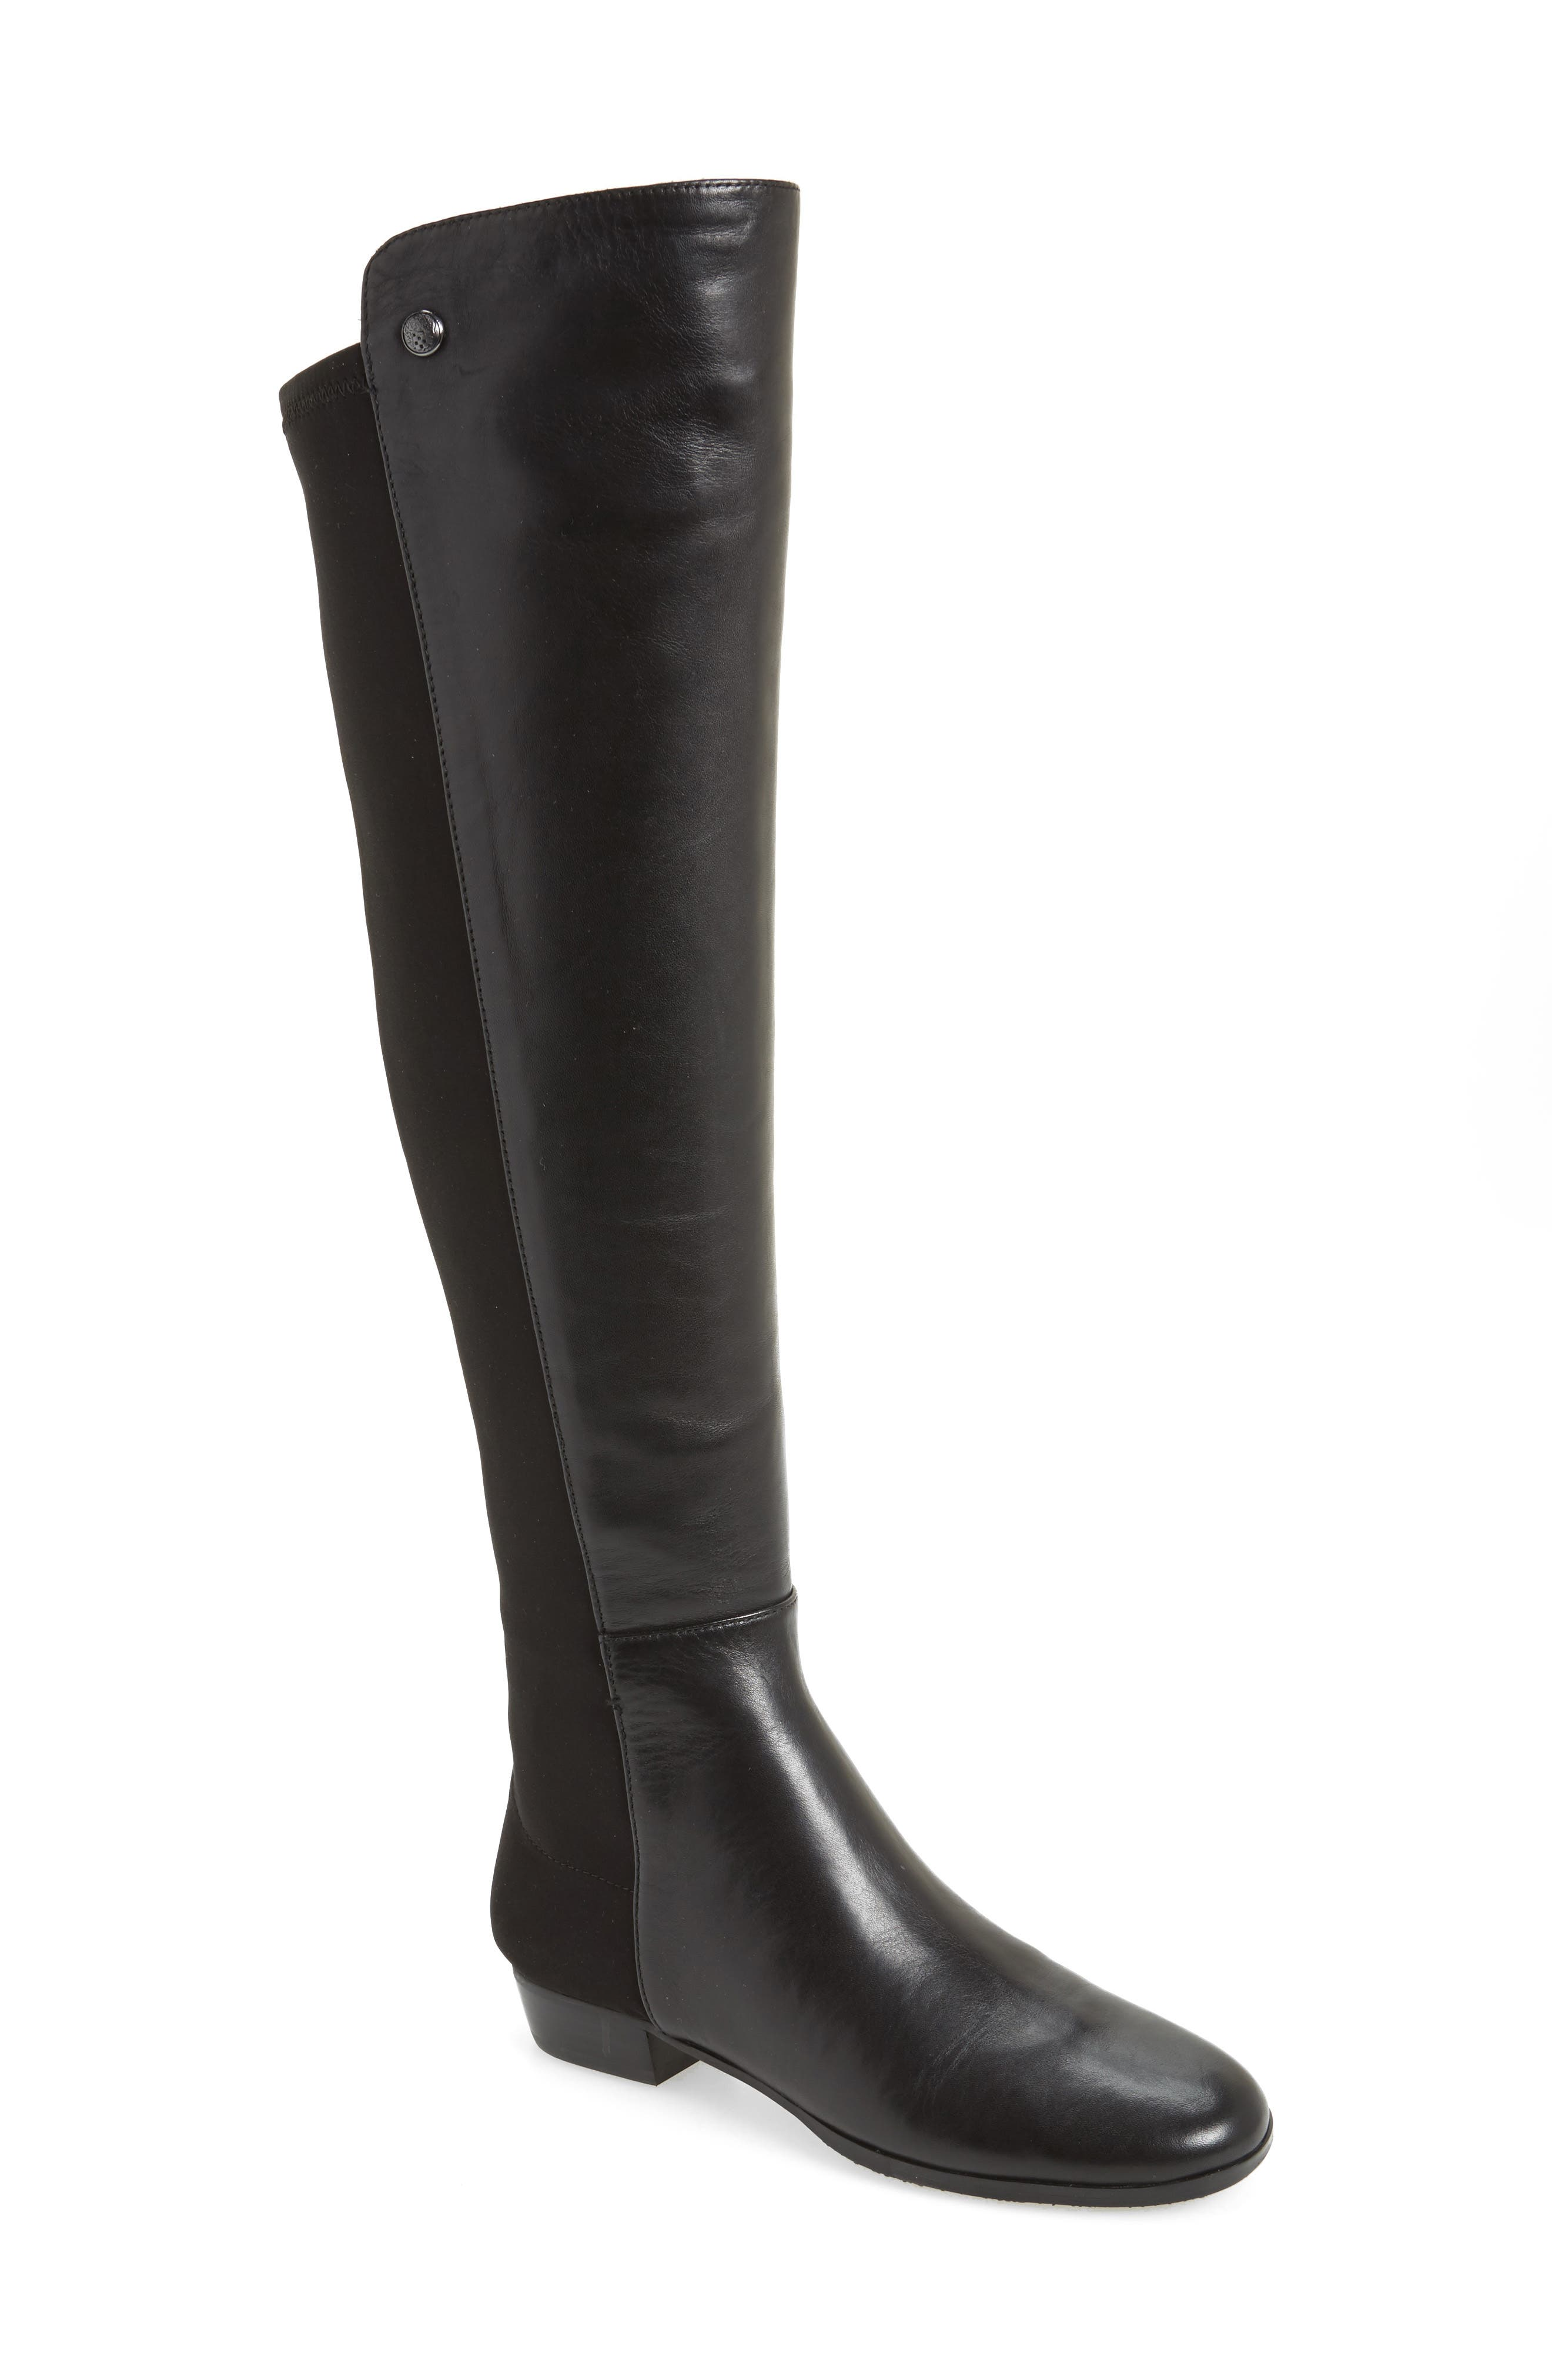 'Karita' Over the Knee Boot,                             Main thumbnail 1, color,                             BLACK/ BLACK